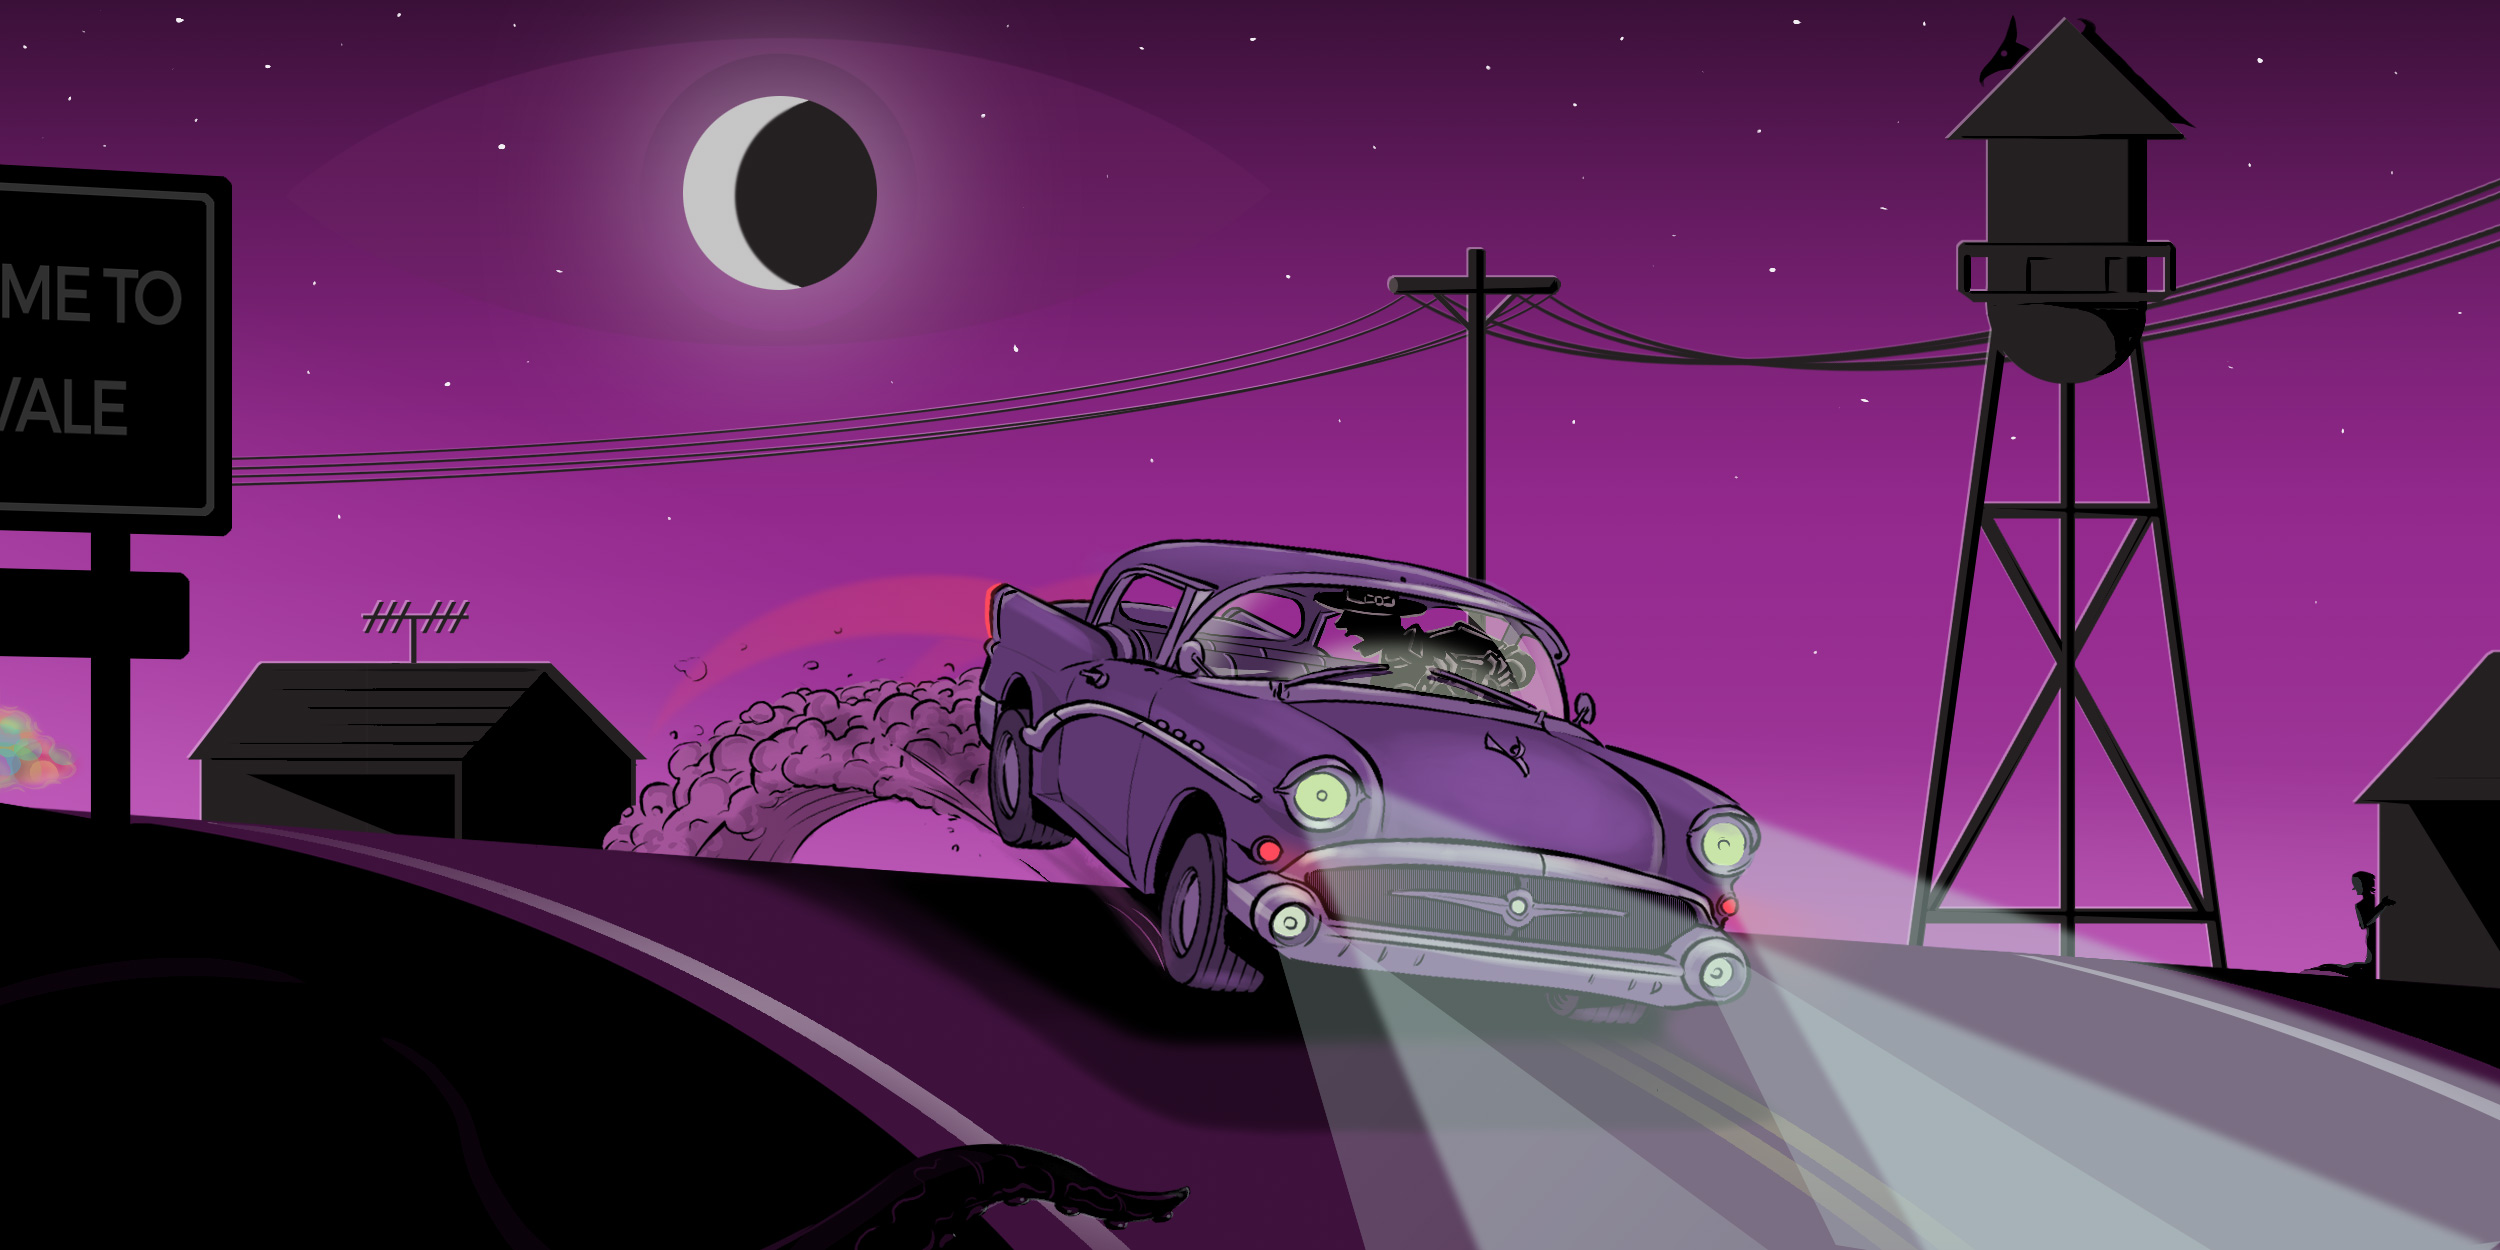 Welcome To Night Vale podcast banner photo